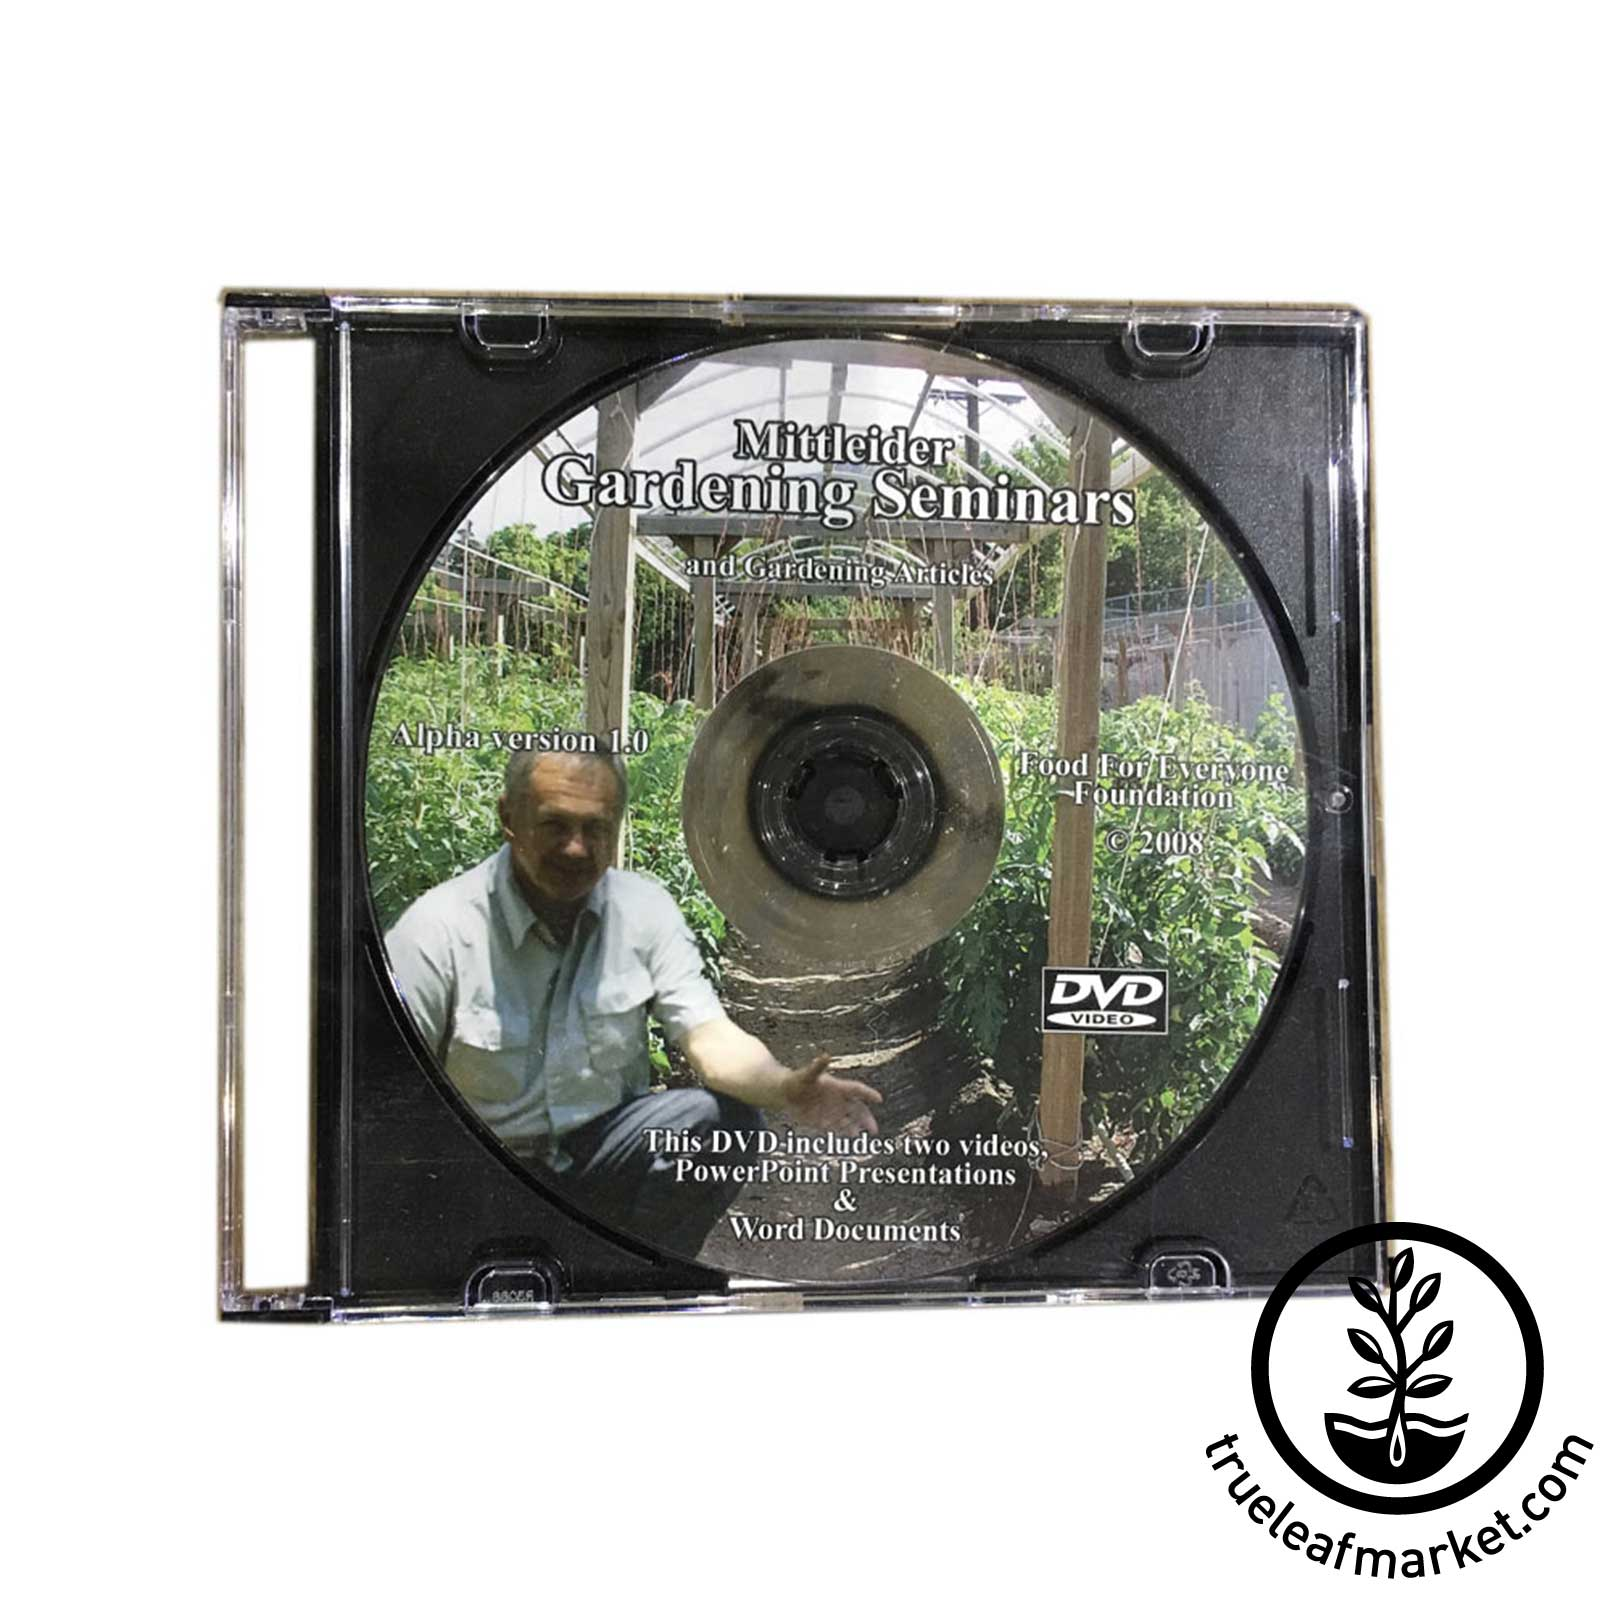 DVD: Mittleider Gardening Seminars and Gardening Articles